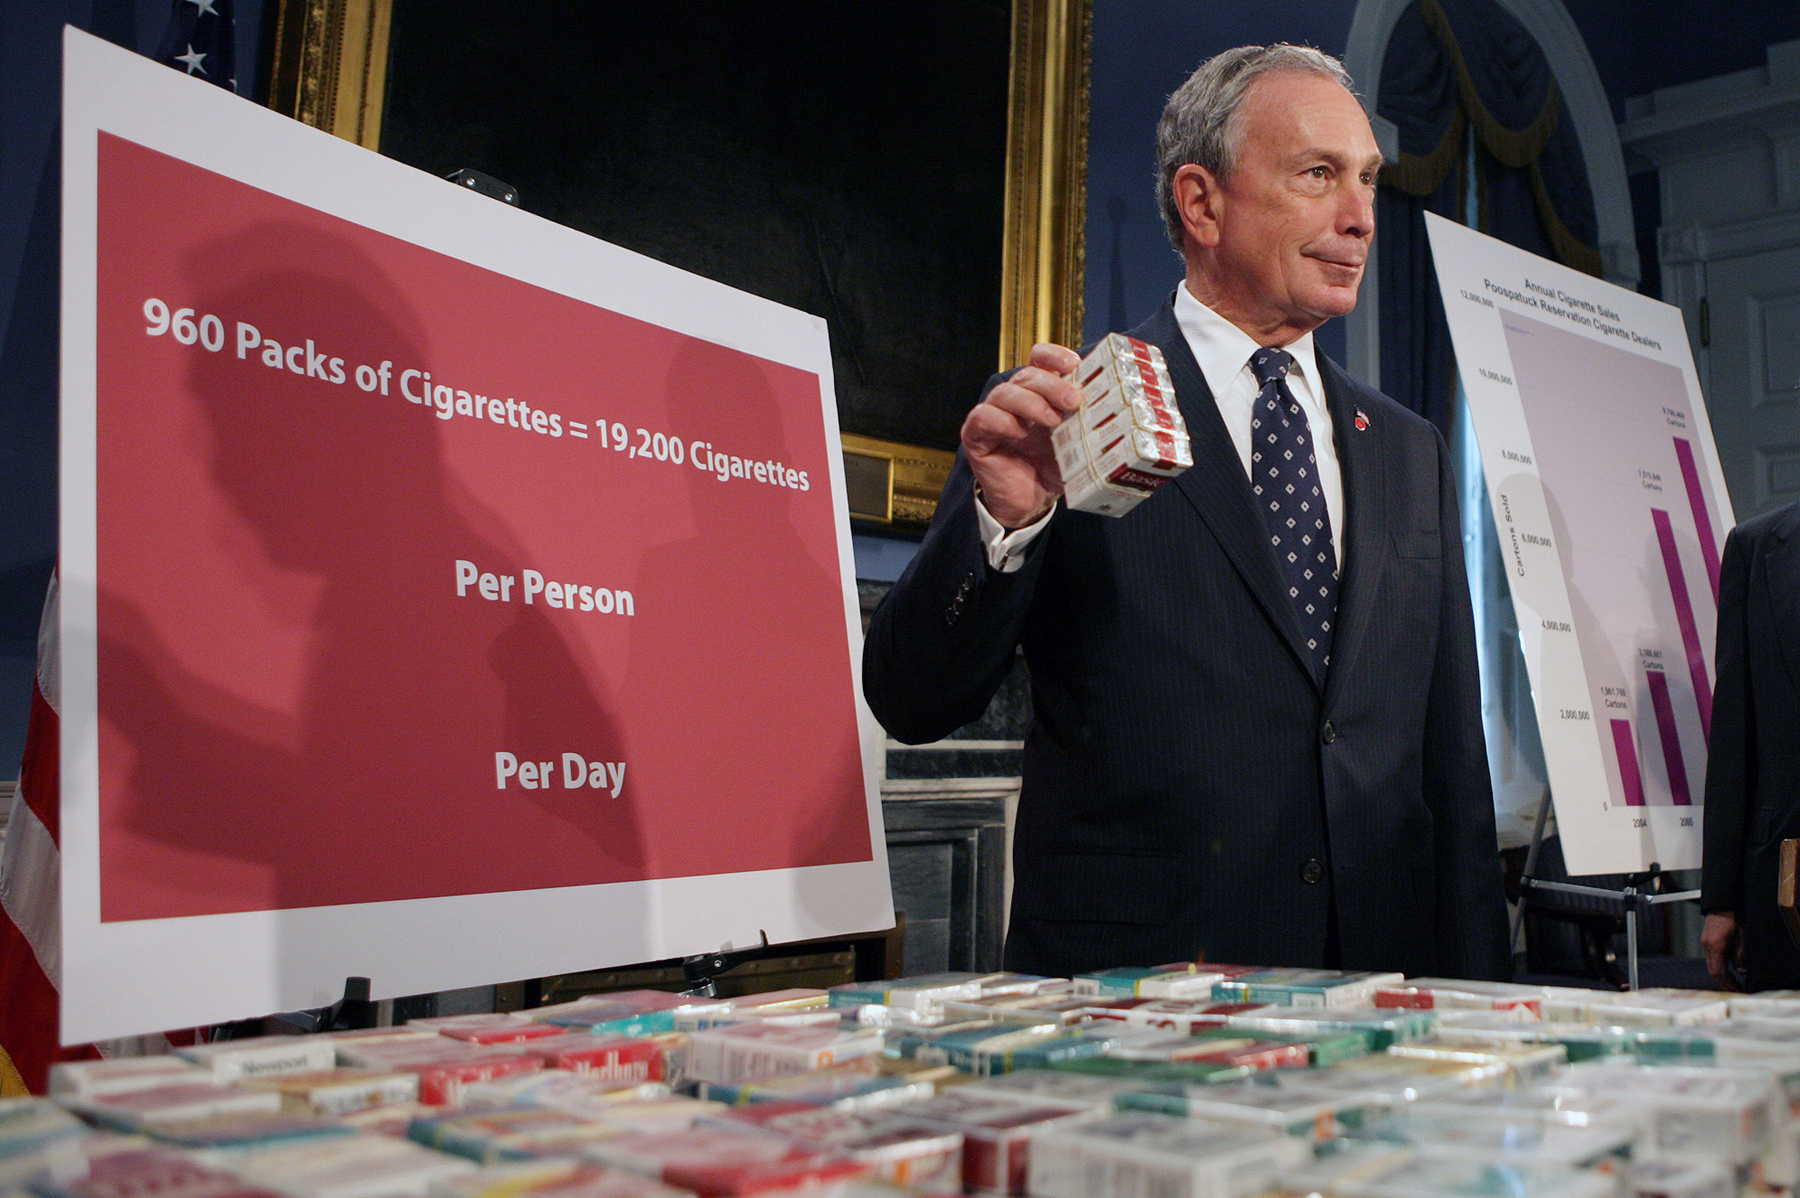 Bloomberg stands near a display of cigarettes during a news conference at City Hall, where he announced that New York City had filed a lawsuit against eight smoke shops on an Indian reservation on Long Island, on Sept. 29, 2008.